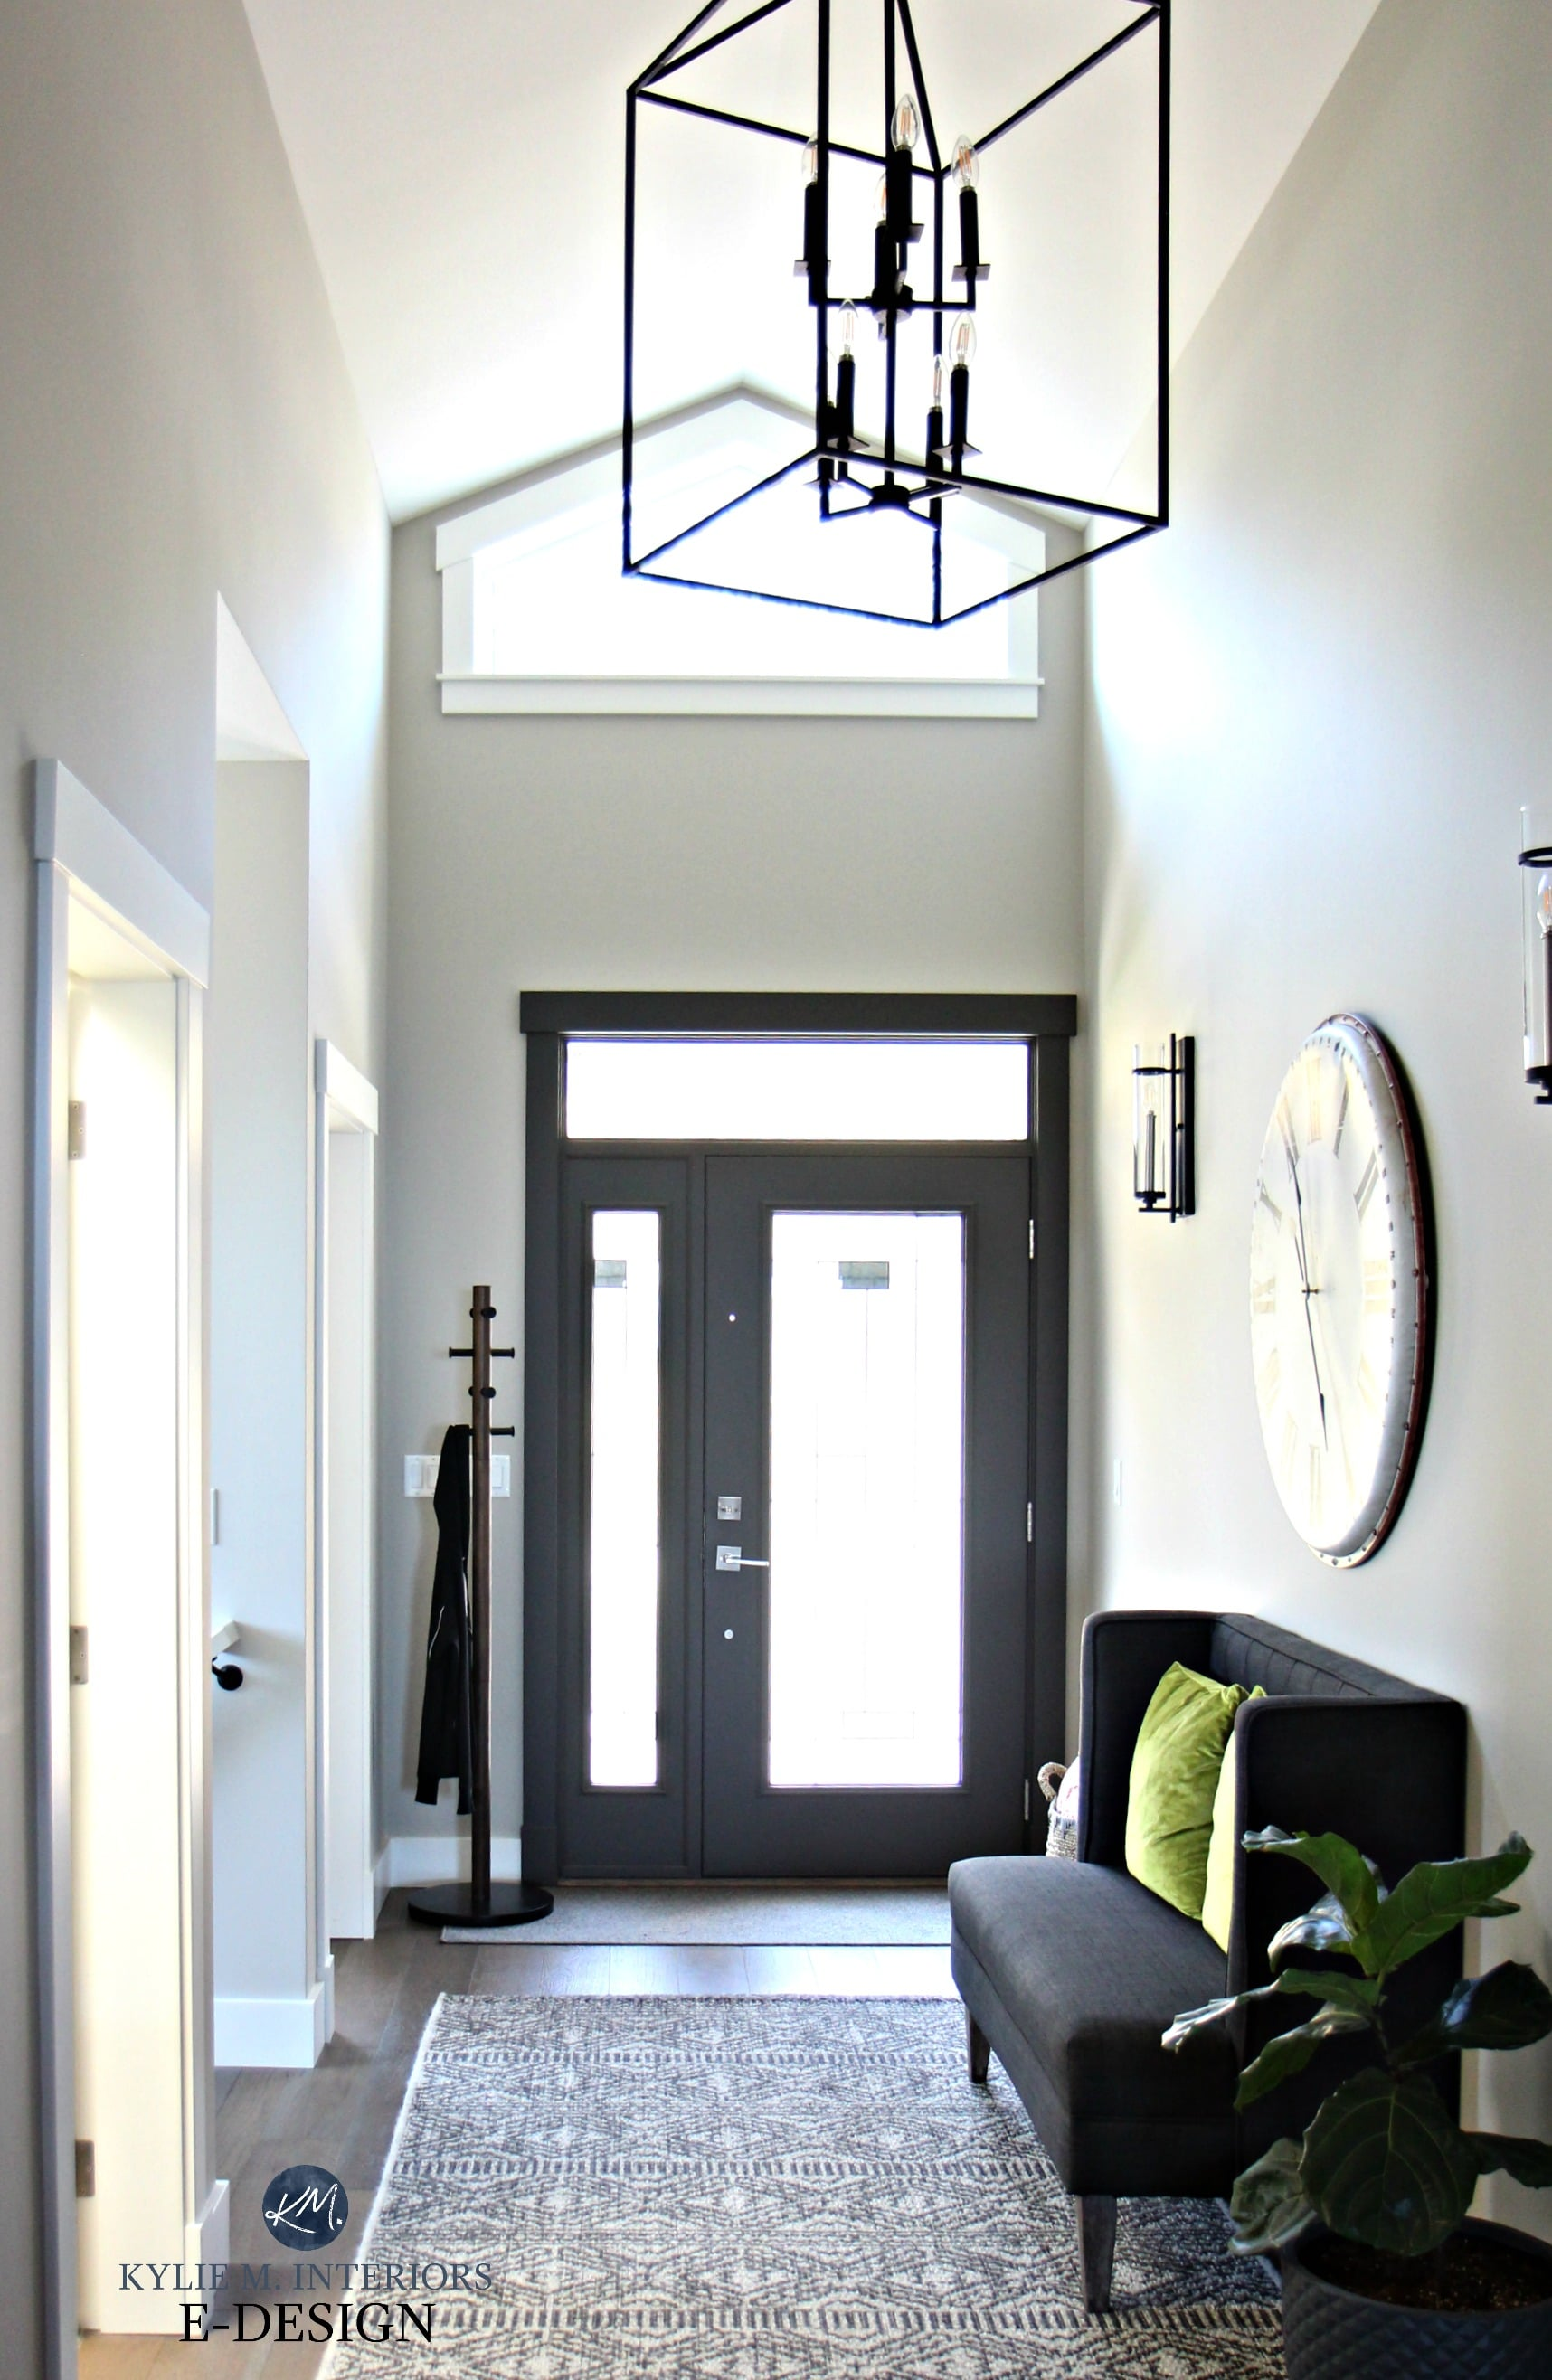 Entryway In Collonade Gray With Inside Of Front Door Painted Urbane Bronze,  Vaulted Ceiling. Kylie M INteriors Edesign, Online Paint Consulting